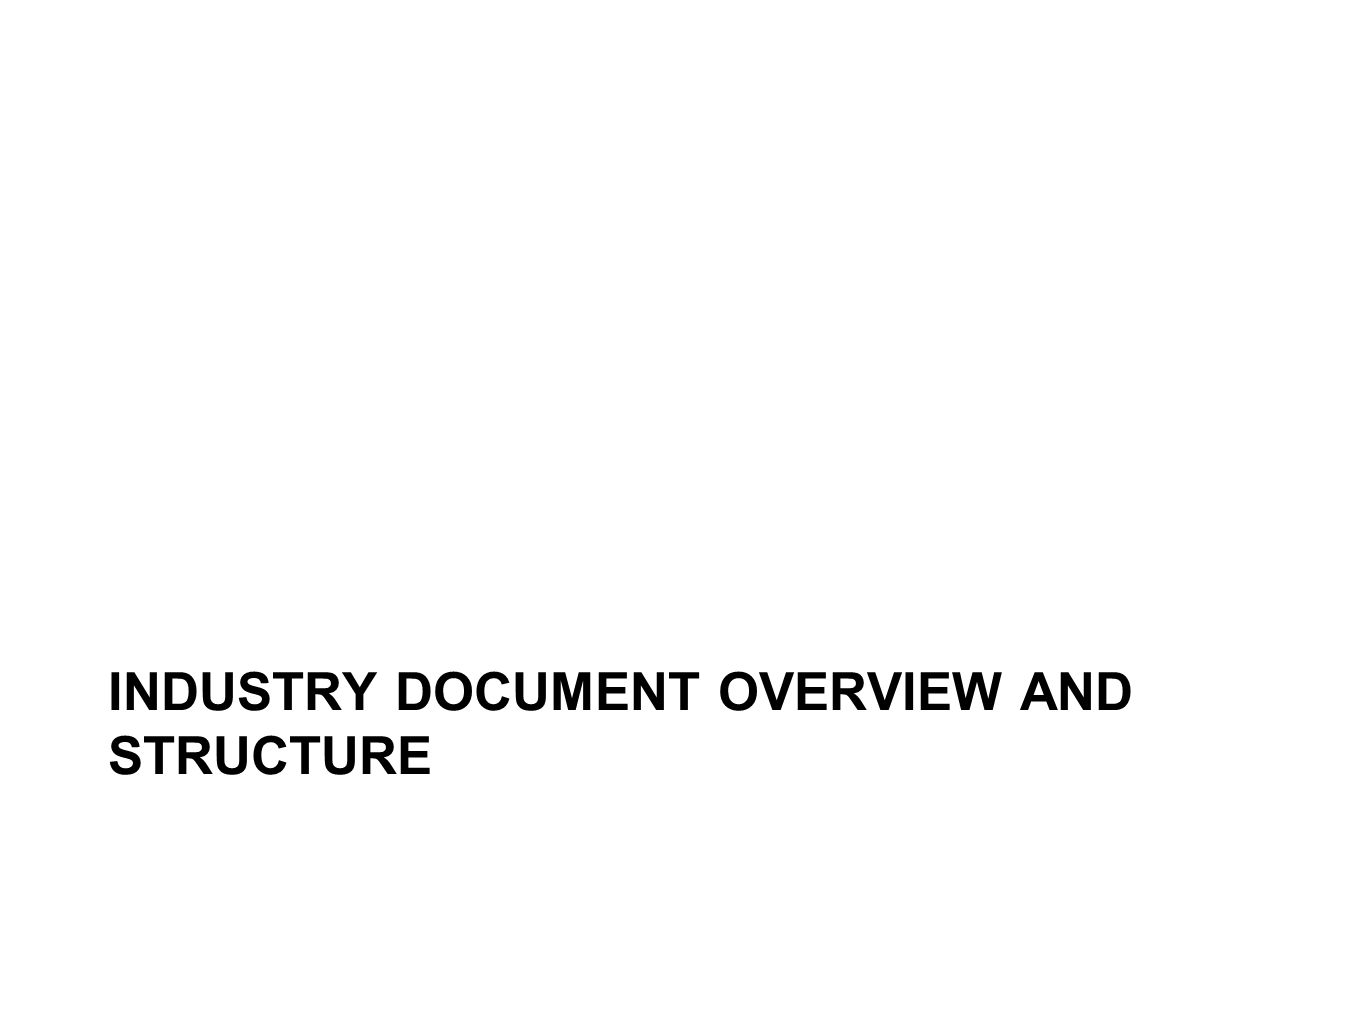 INDUSTRY DOCUMENT OVERVIEW AND STRUCTURE